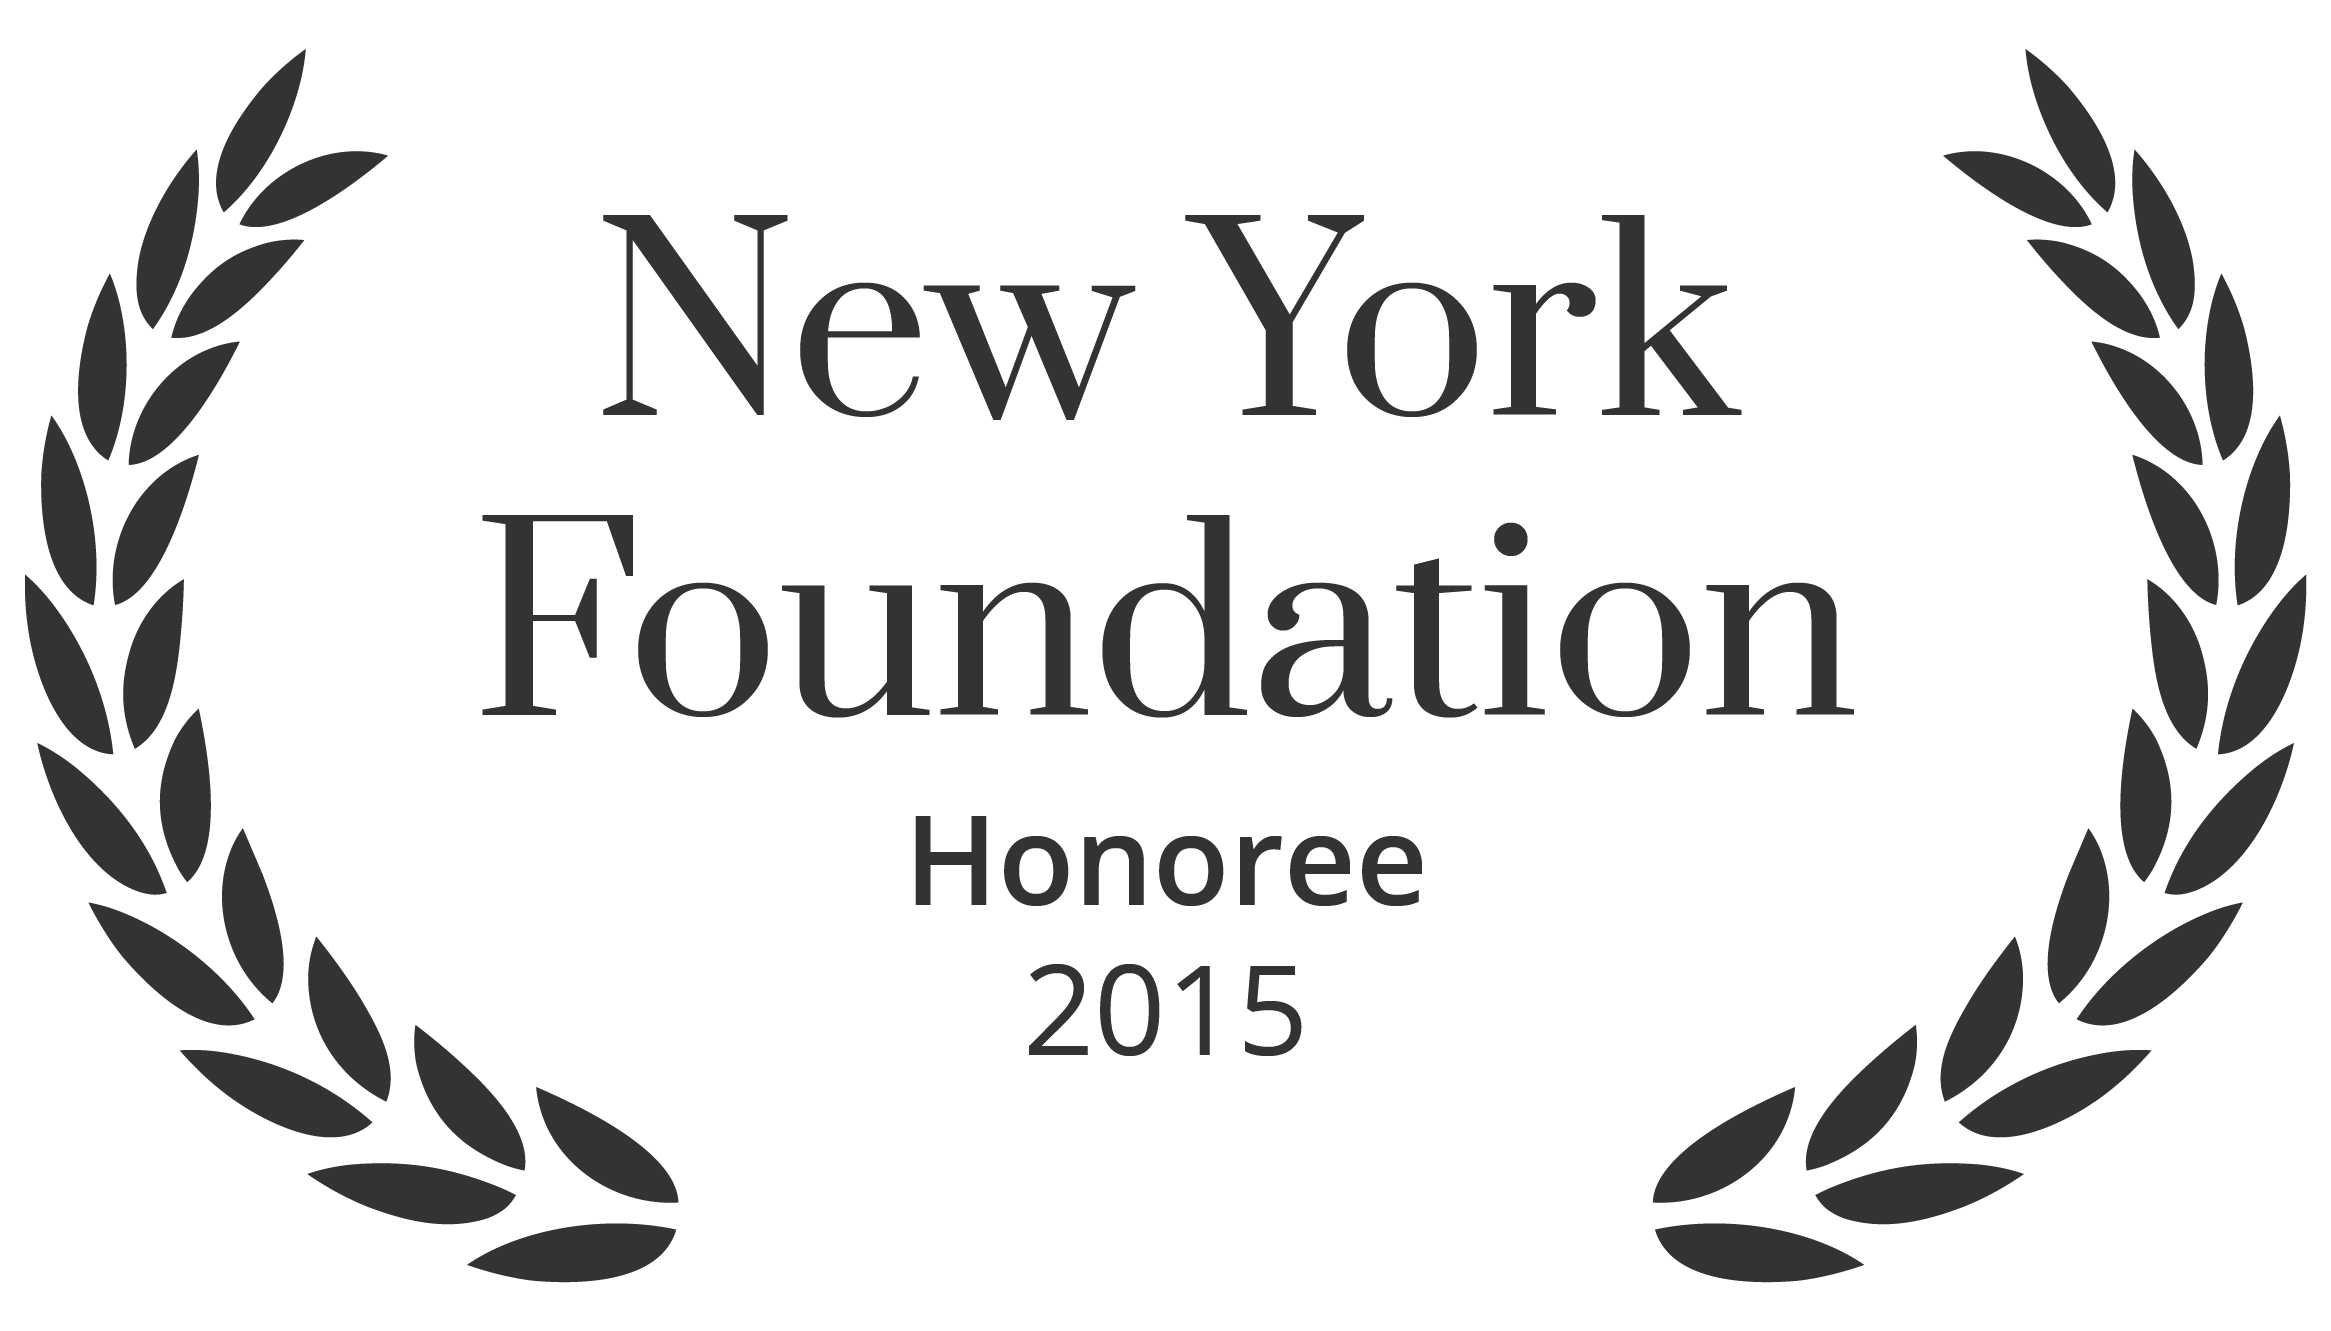 New York Foundation